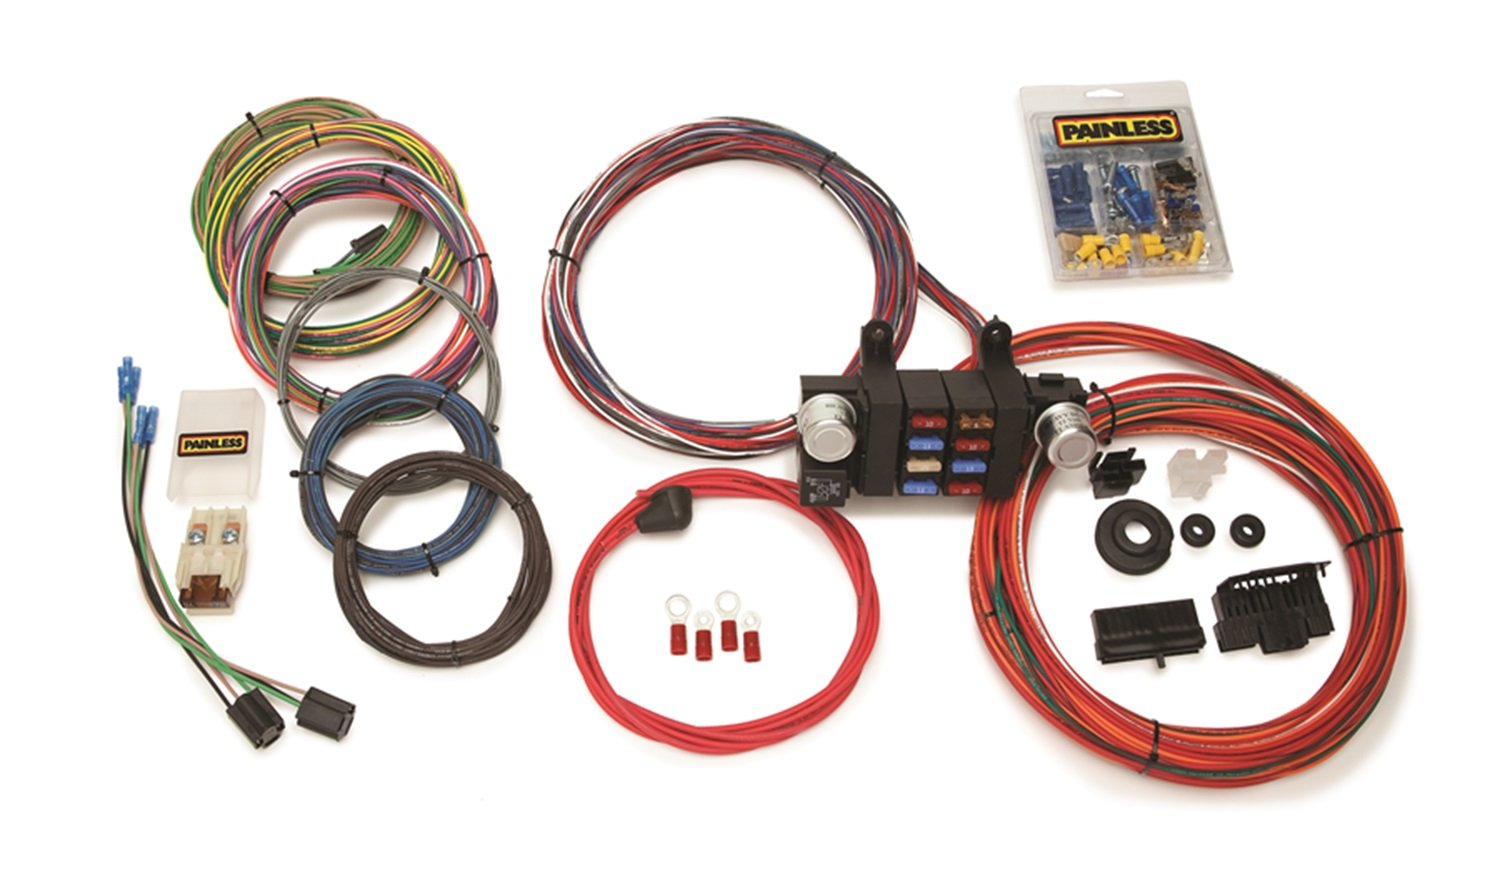 714FypRjpJL._SL1500_ amazon com painless wiring 10308 8 circuit mod t bucket h automotive wiring harness at soozxer.org